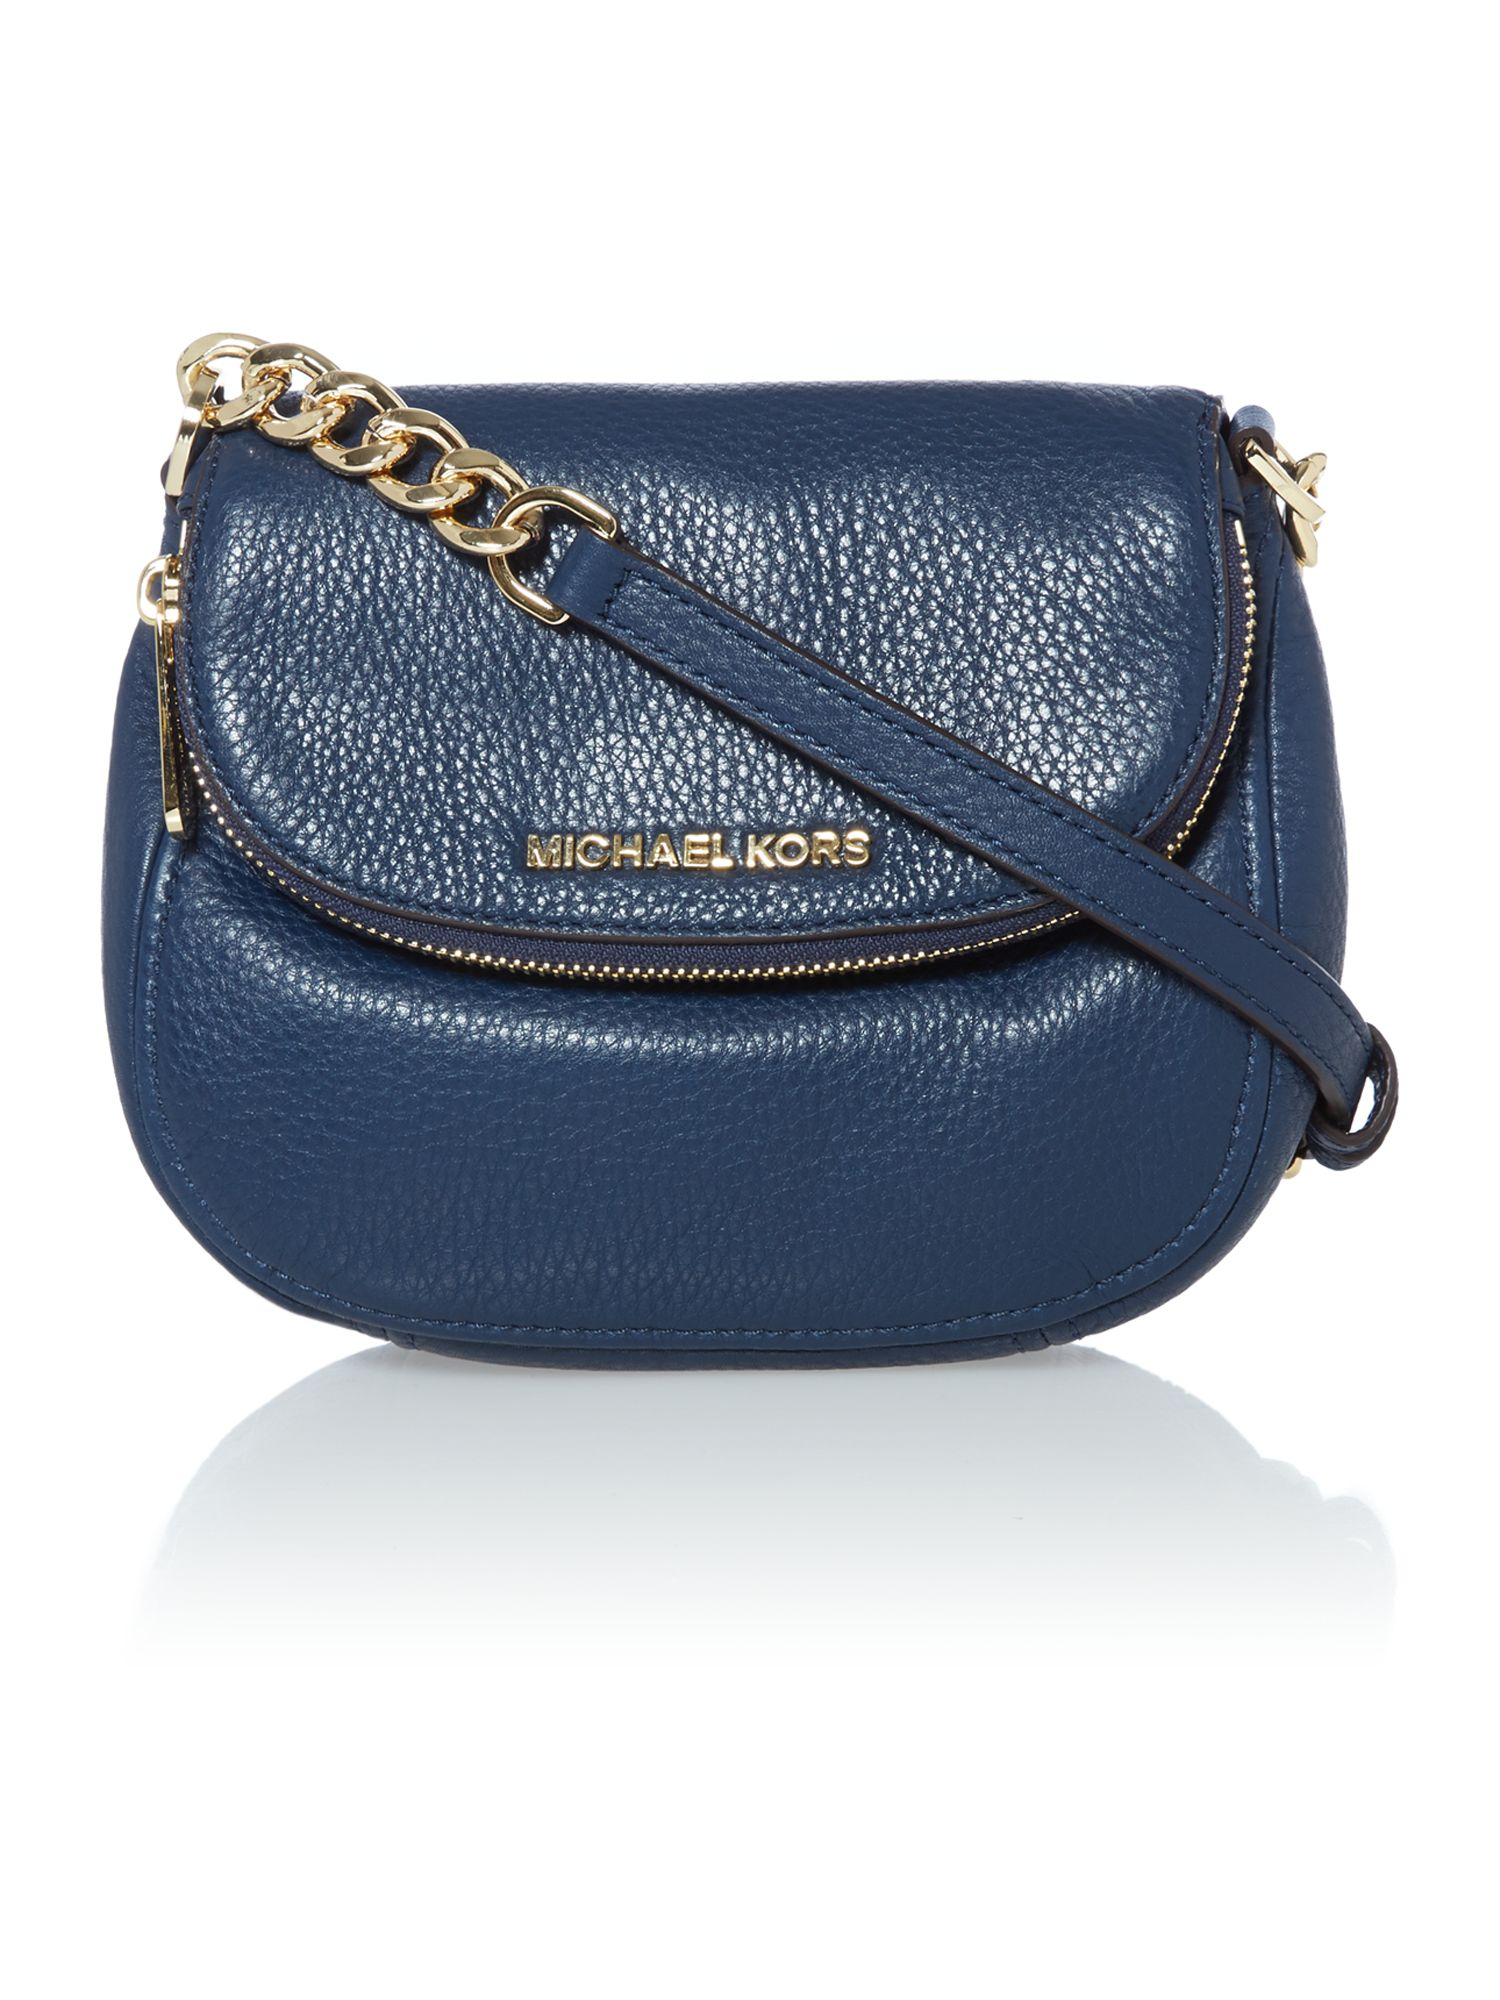 Michael Kors Bedford Navy Flap Over Cross Body Bag In Blue